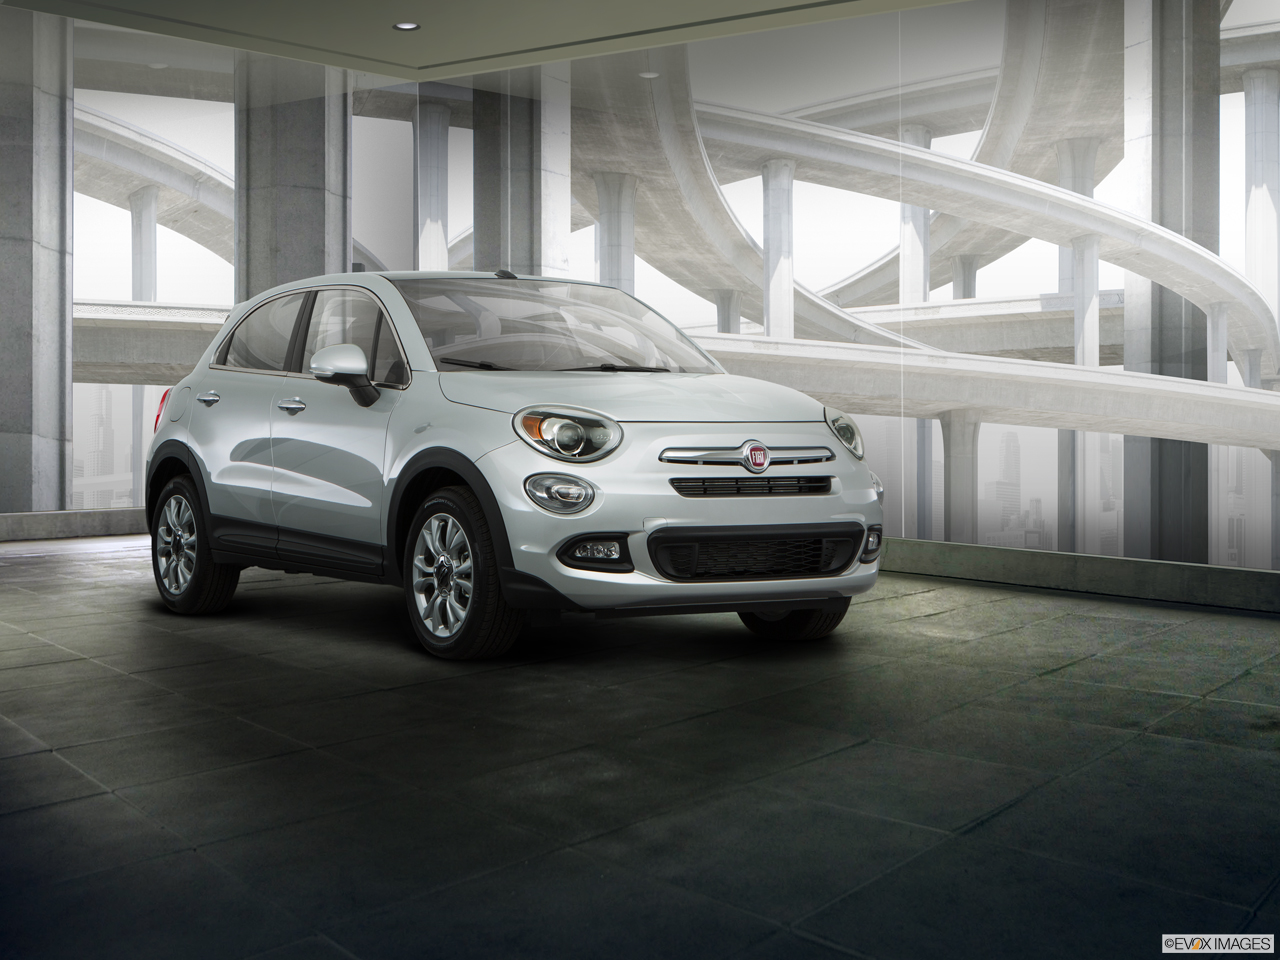 Exterior View Of 2017 Fiat 500X in Birmingham